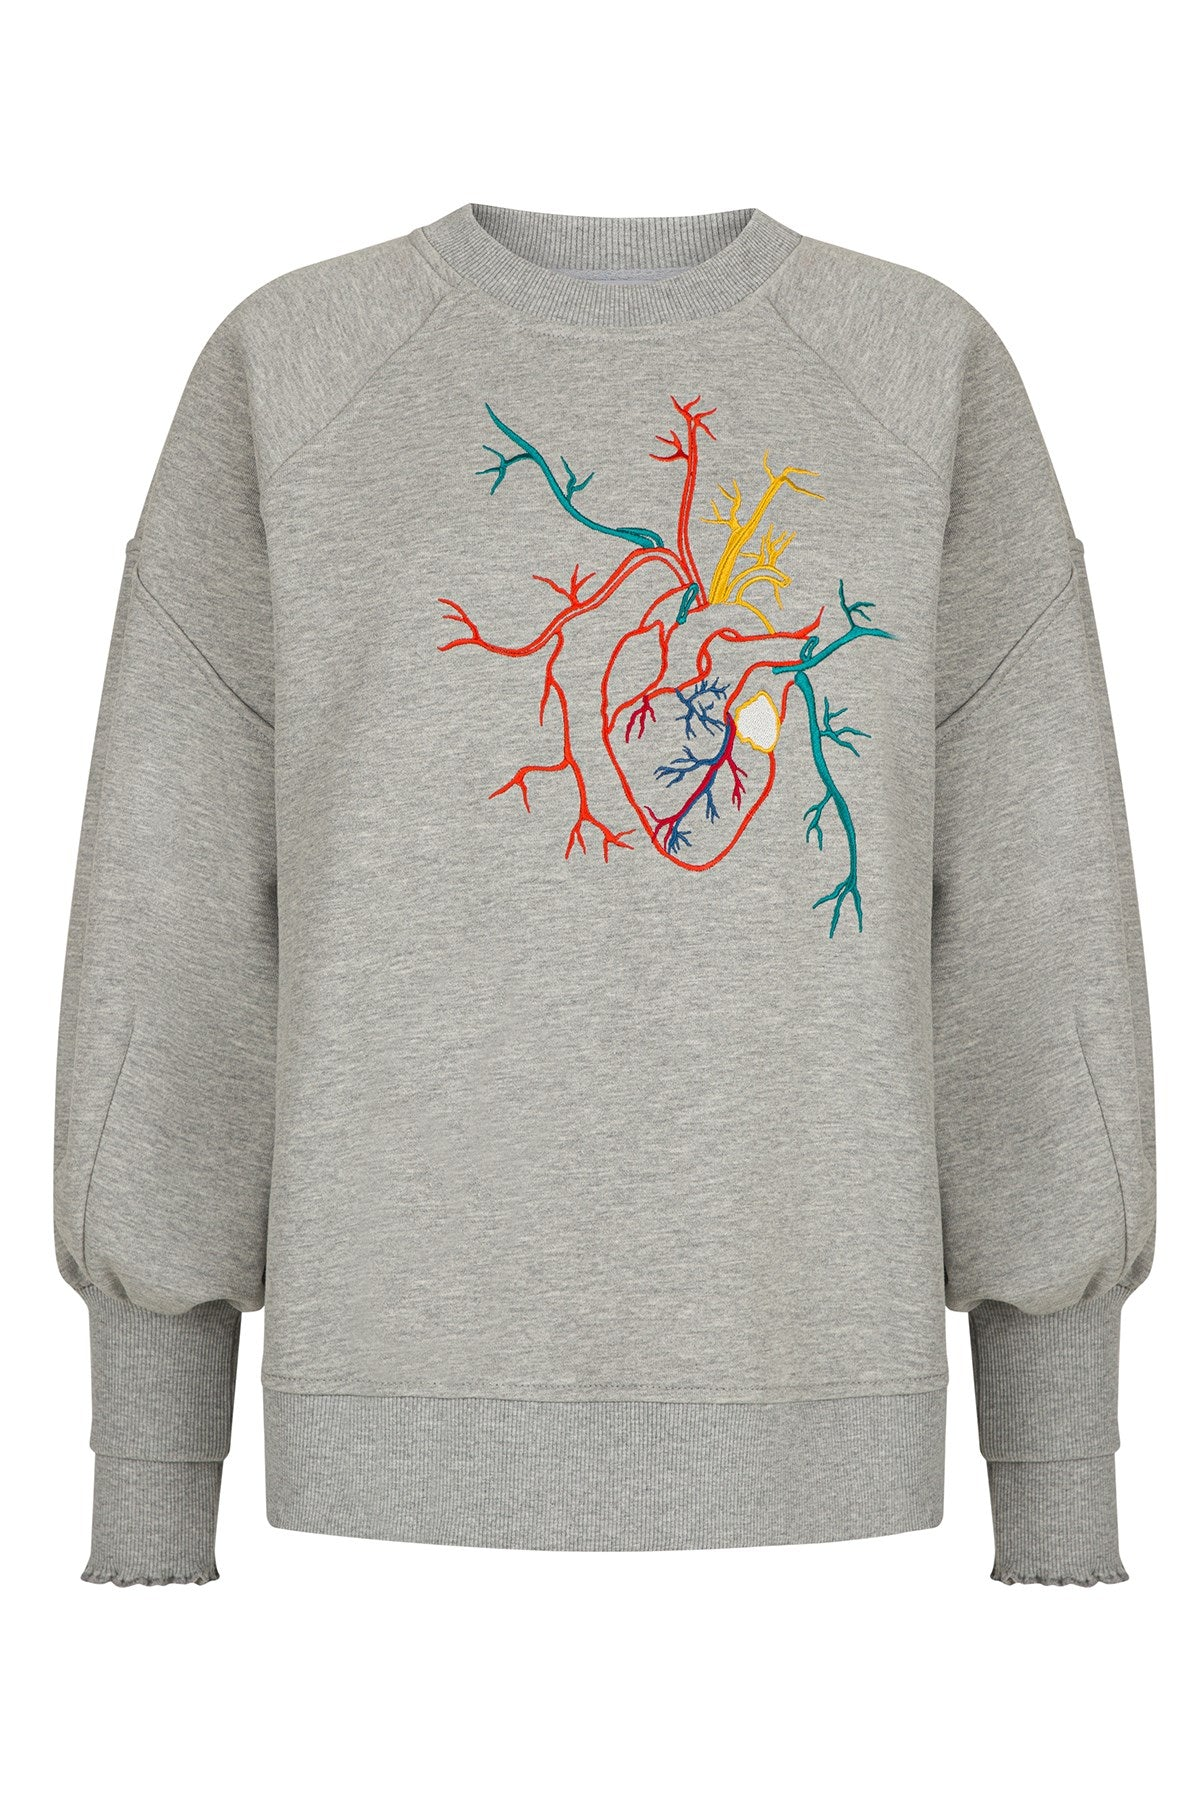 Picture of Kiru Ayu Sweatshirt